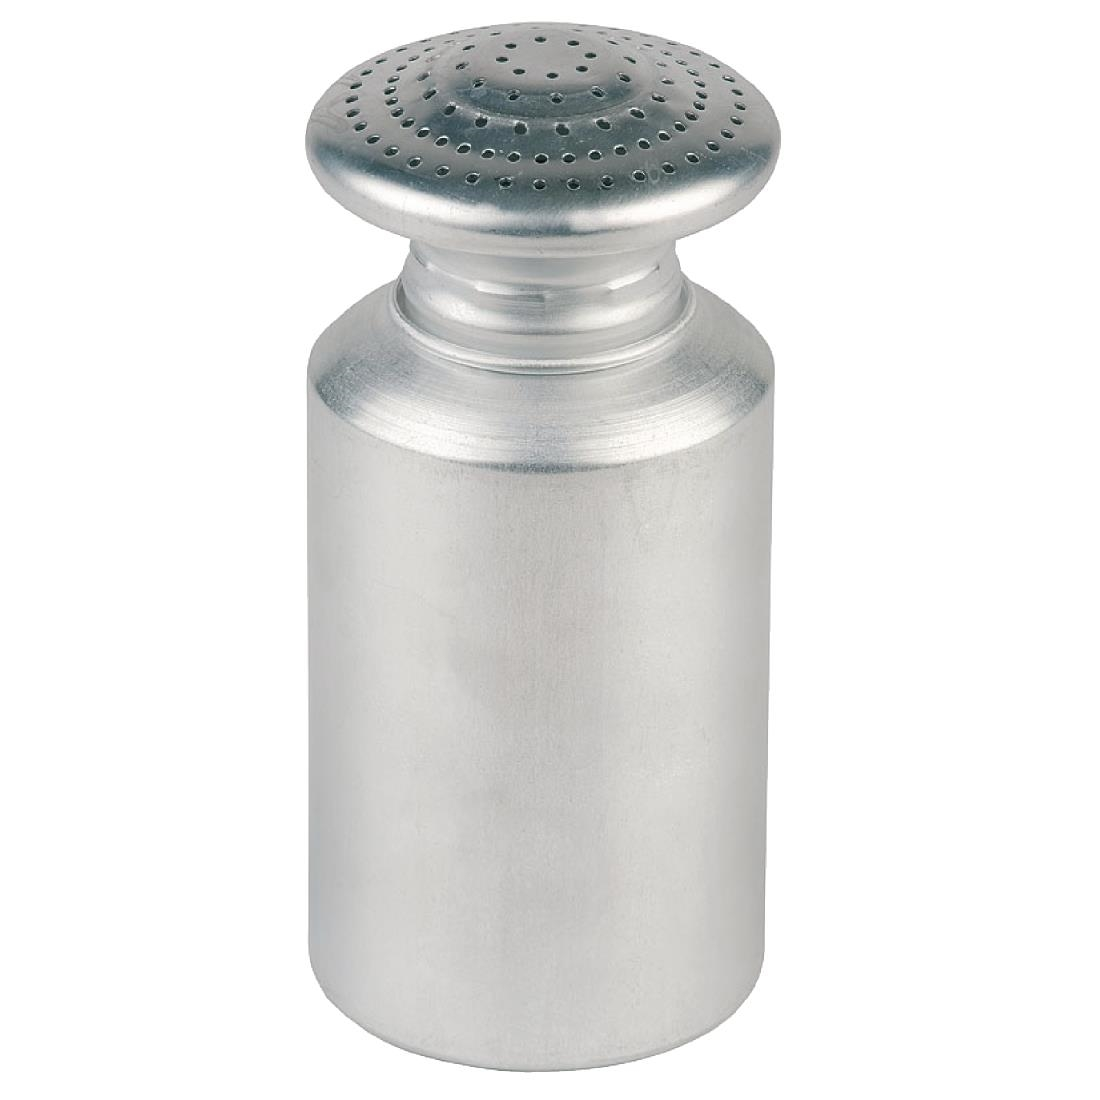 Image of Aluminium Salt Shaker